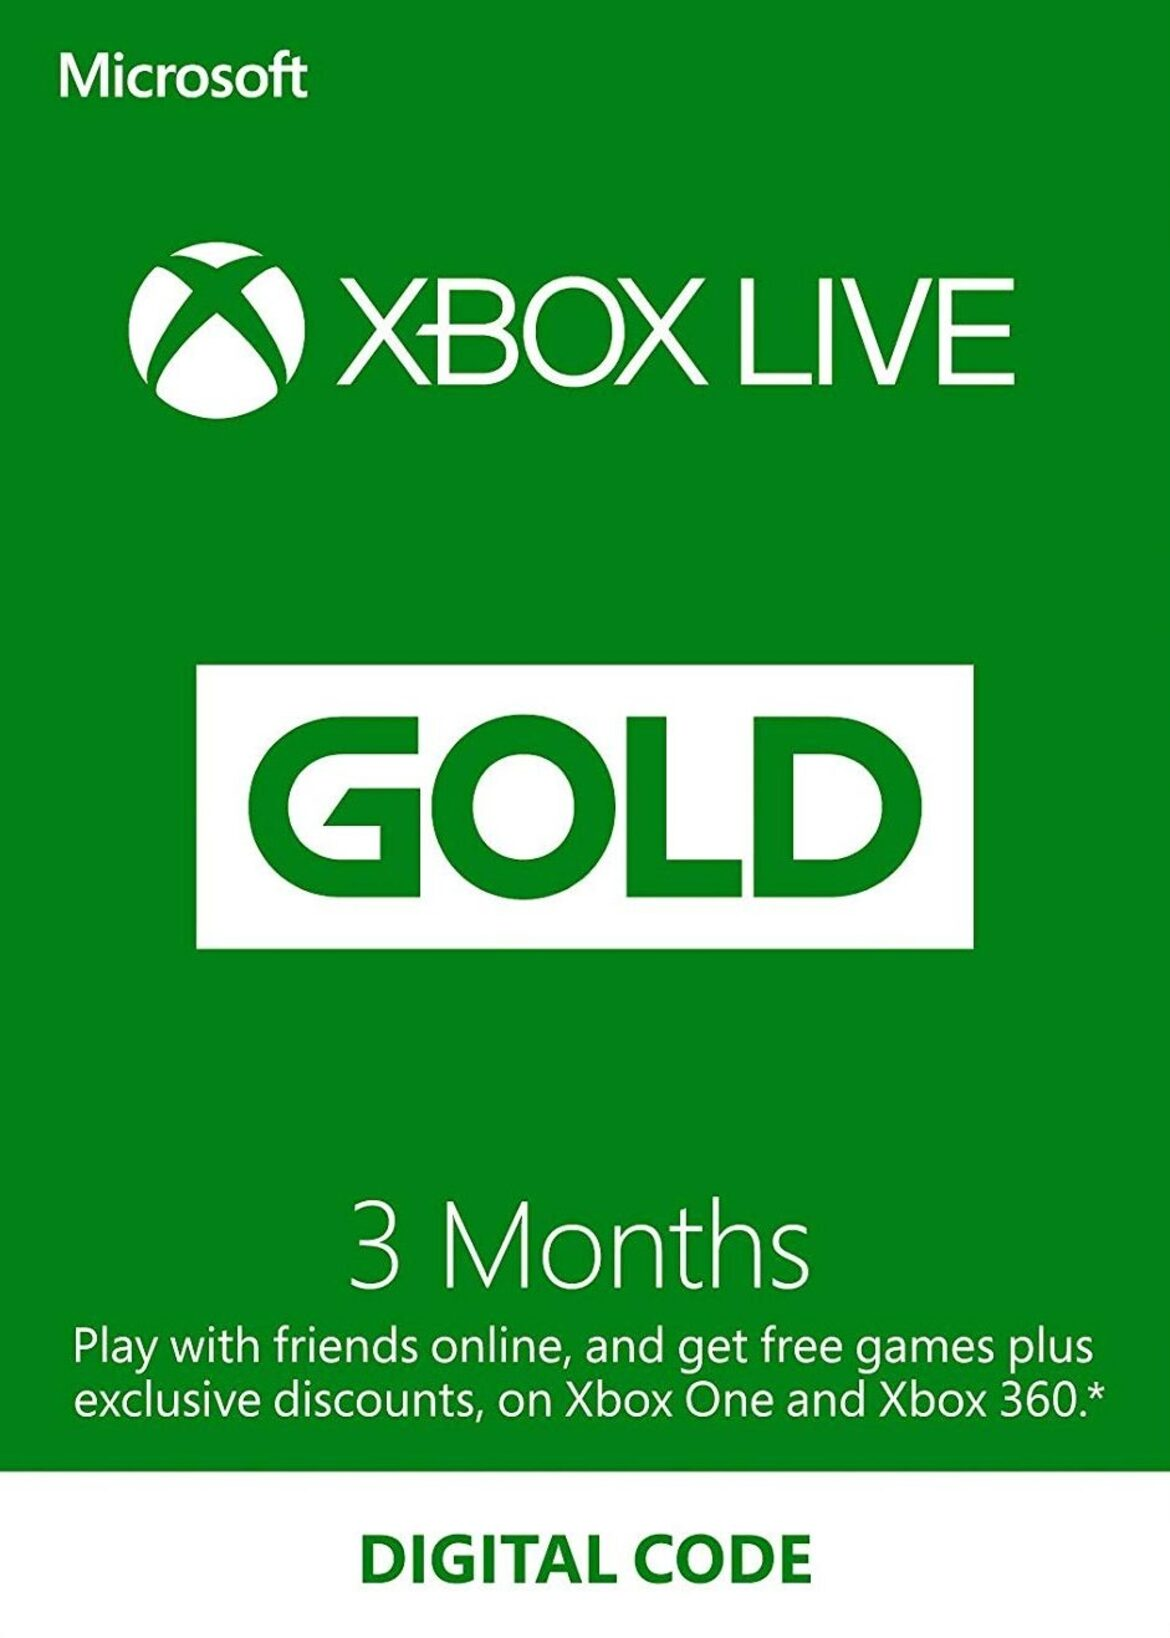 any way to get free xbox live gold